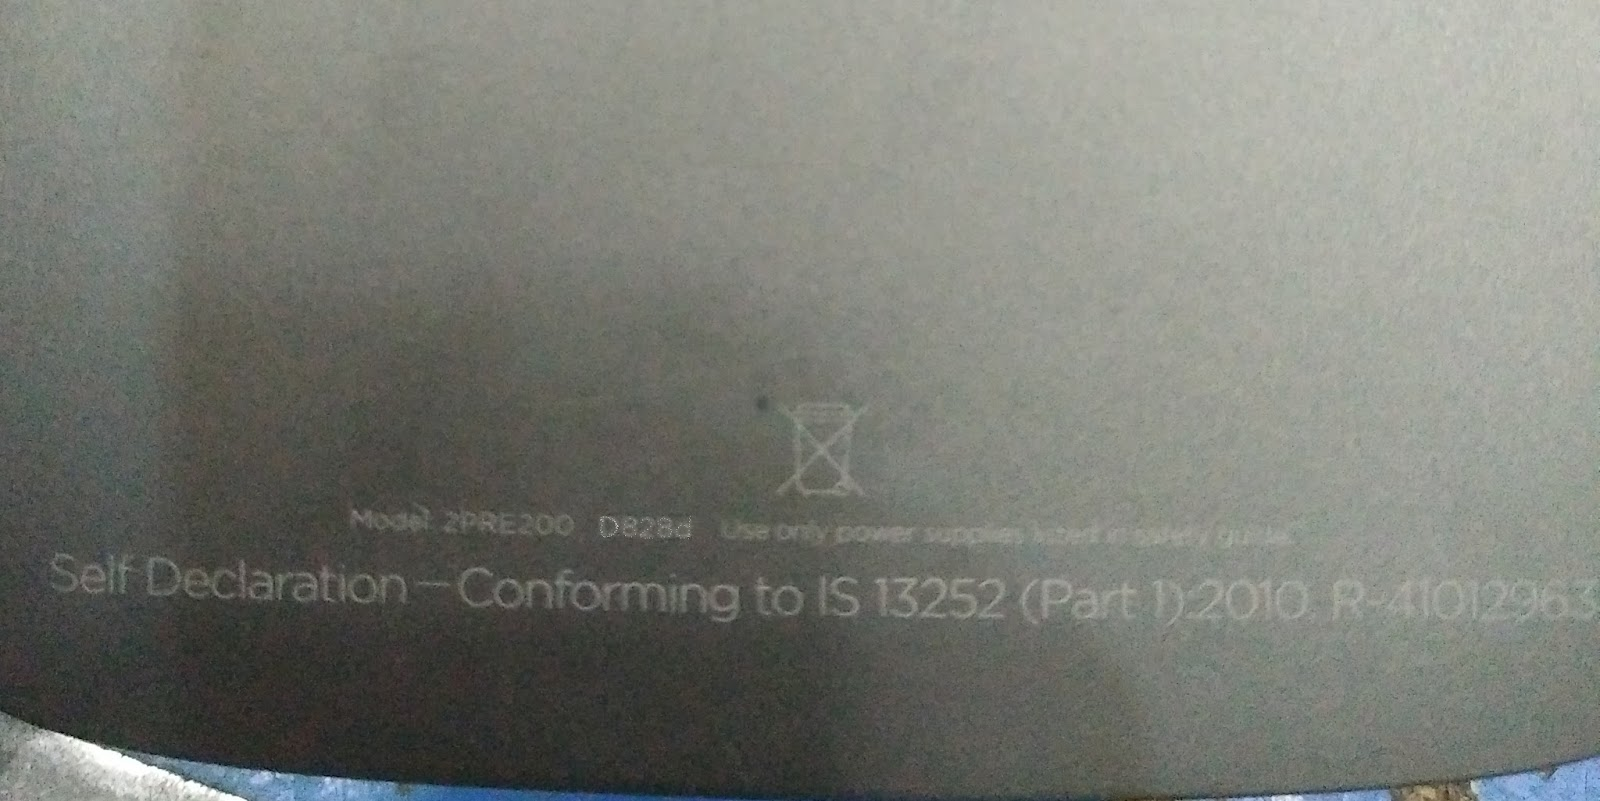 HTC D828d FLASH FILE FIRMWARE MT6735 5 1 100% TESTED ANDROID